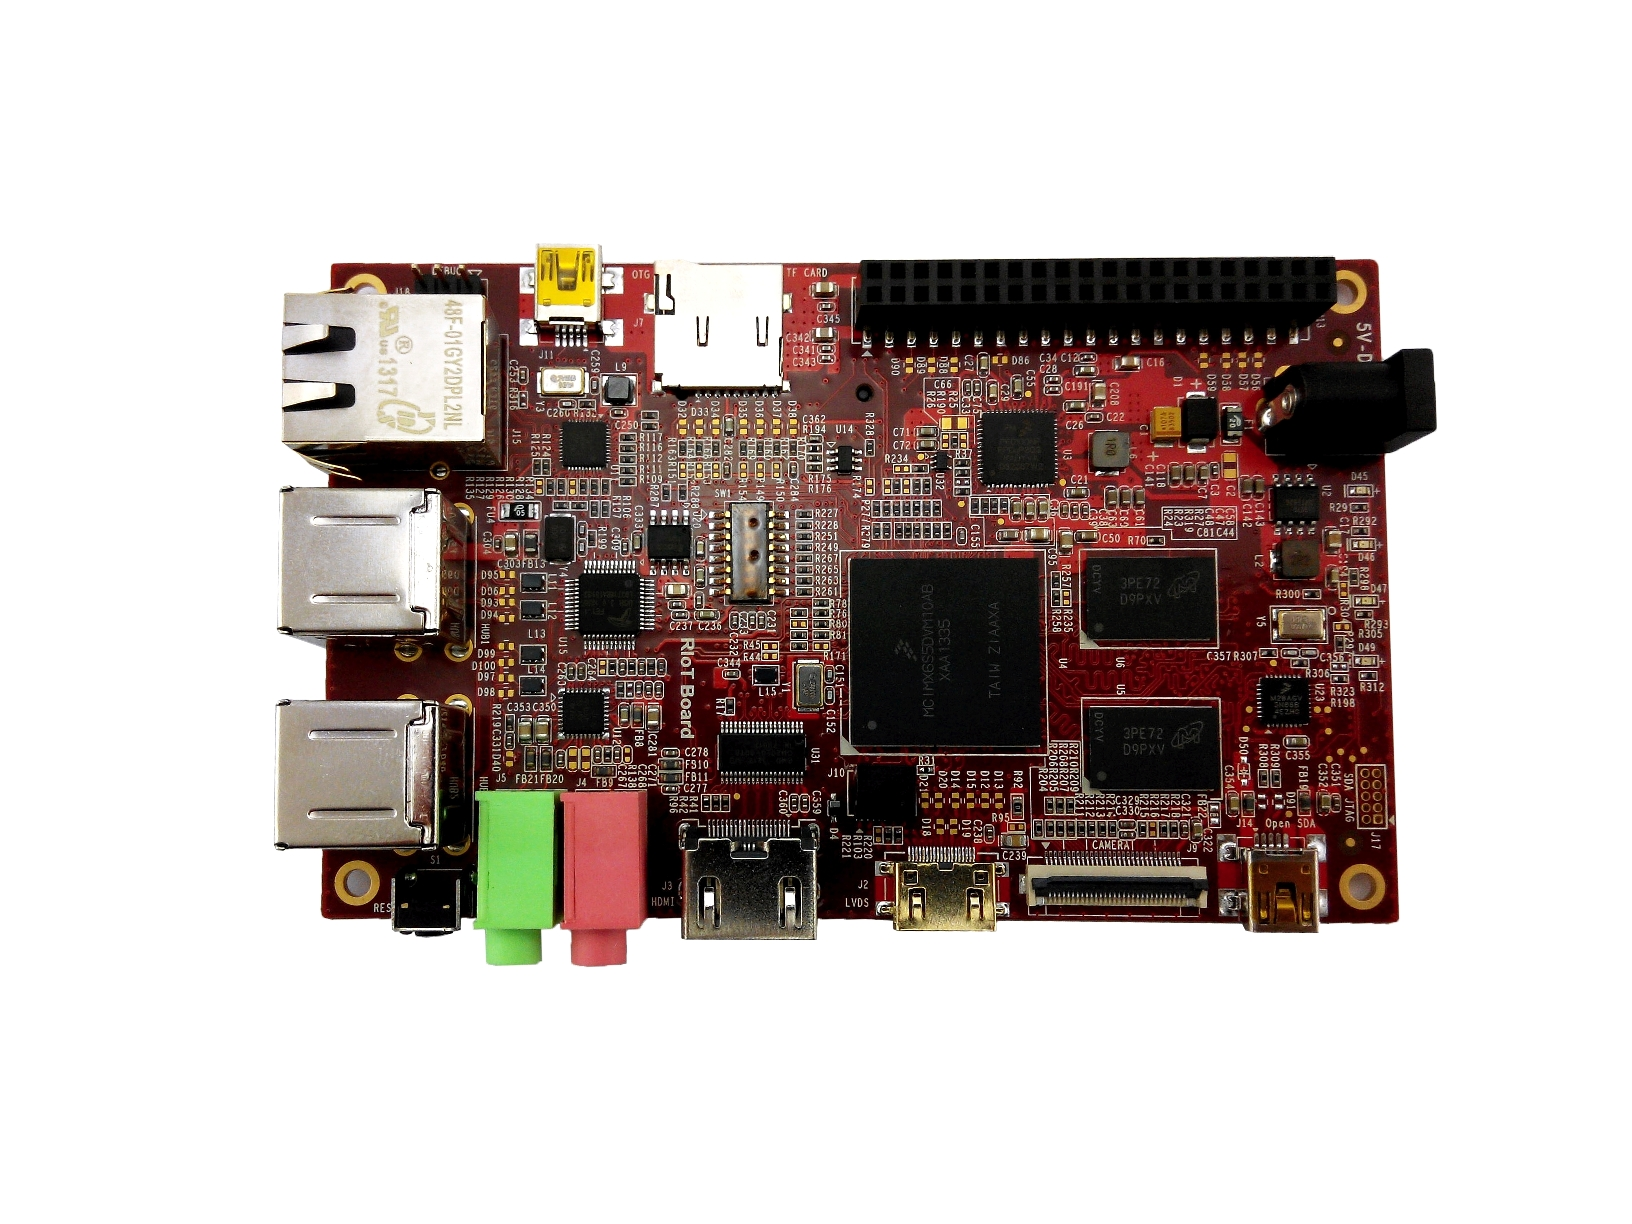 Riotboard - Revolutionising the Internet of Things. An open source development platform ideal for Android and GNU/Linux development. Low-cost, fully functional Single Board Computer. i.MX 6Solo ARM Cortex-A9 processor at 1GHz, 1GB DDR3 RAM at 800MHz, 4GB EMMC Flash, Ideal for Arduino and GNU/Linux development.